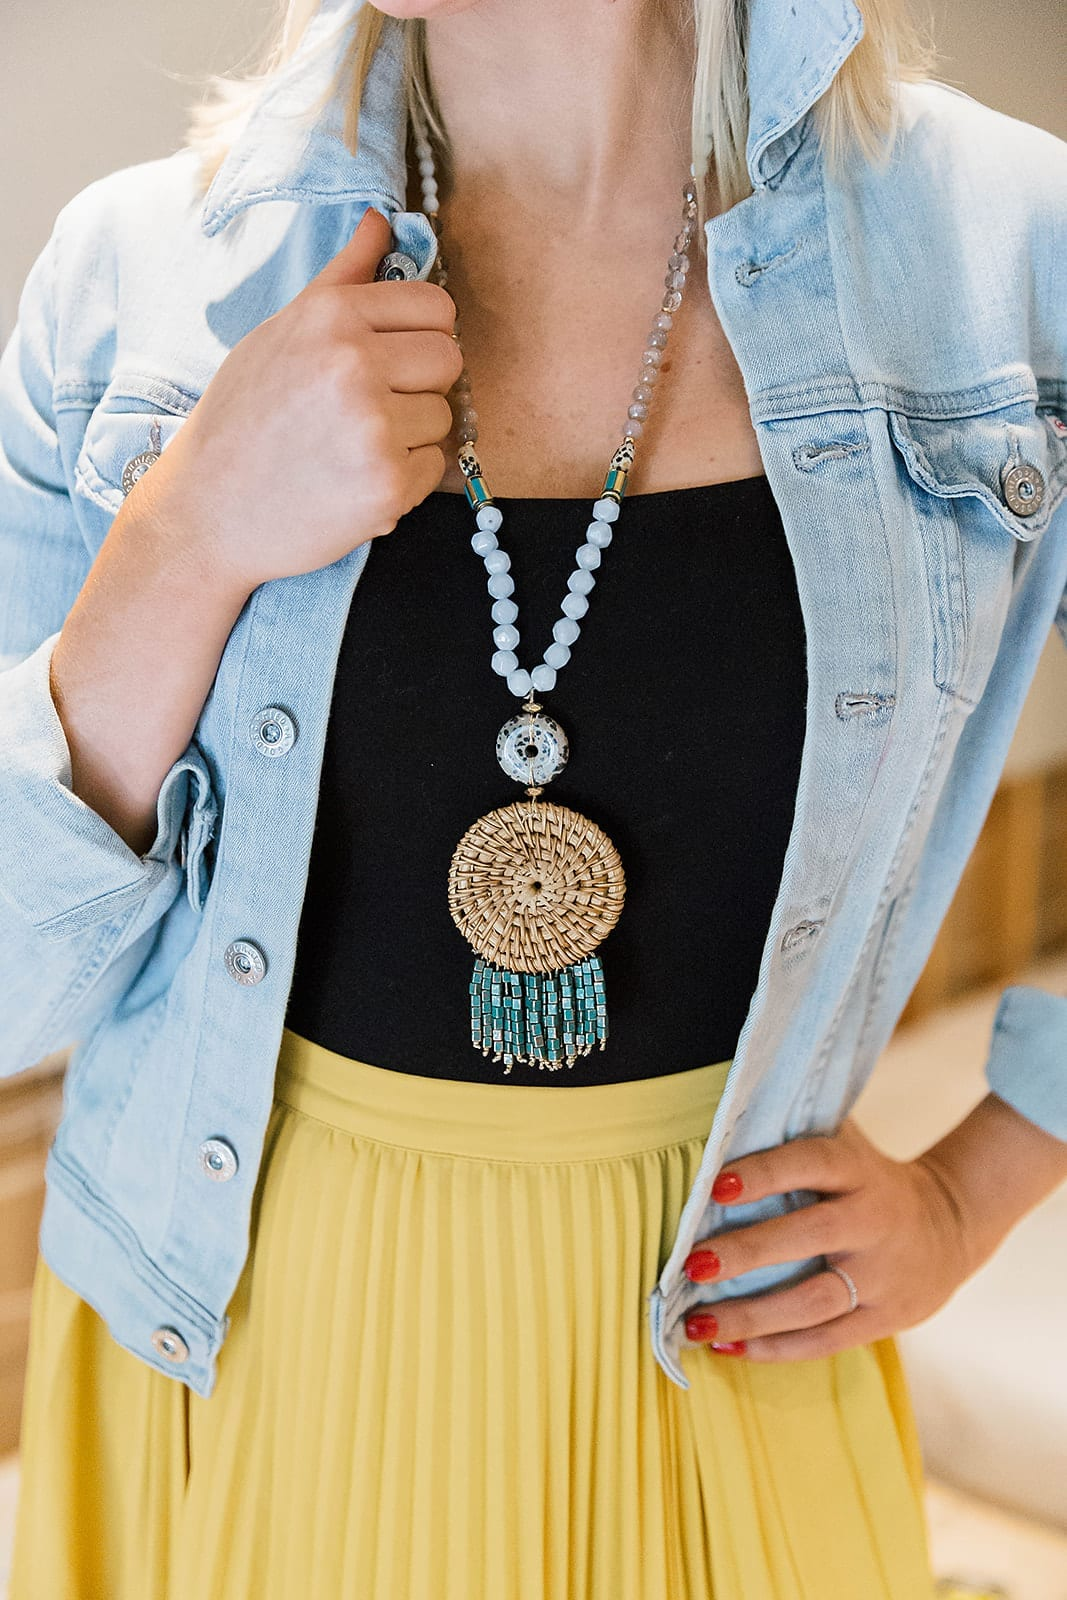 Statement Anthropologie necklace on sale! Gorgeous dream catcher necklace with blue beads and distressed cropped denim jacket with yellow skirt.